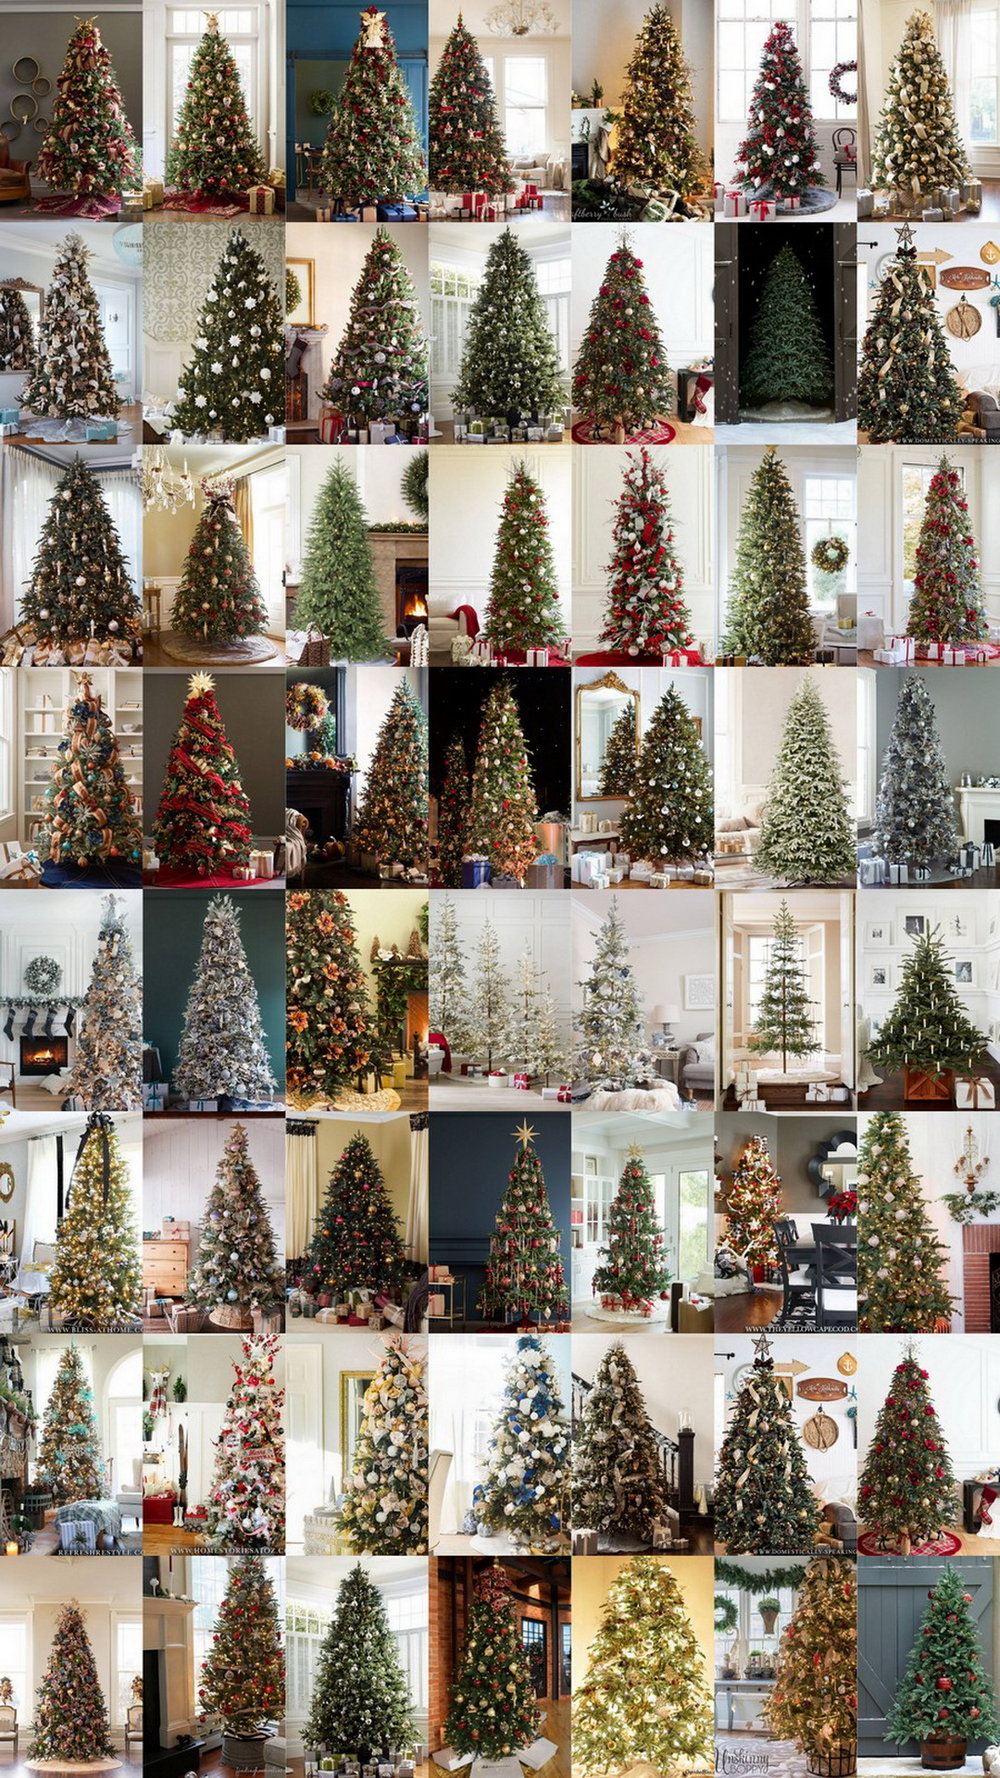 54 Magical Christmas Trees @BalsamHill That Are Utterly Breathtaking